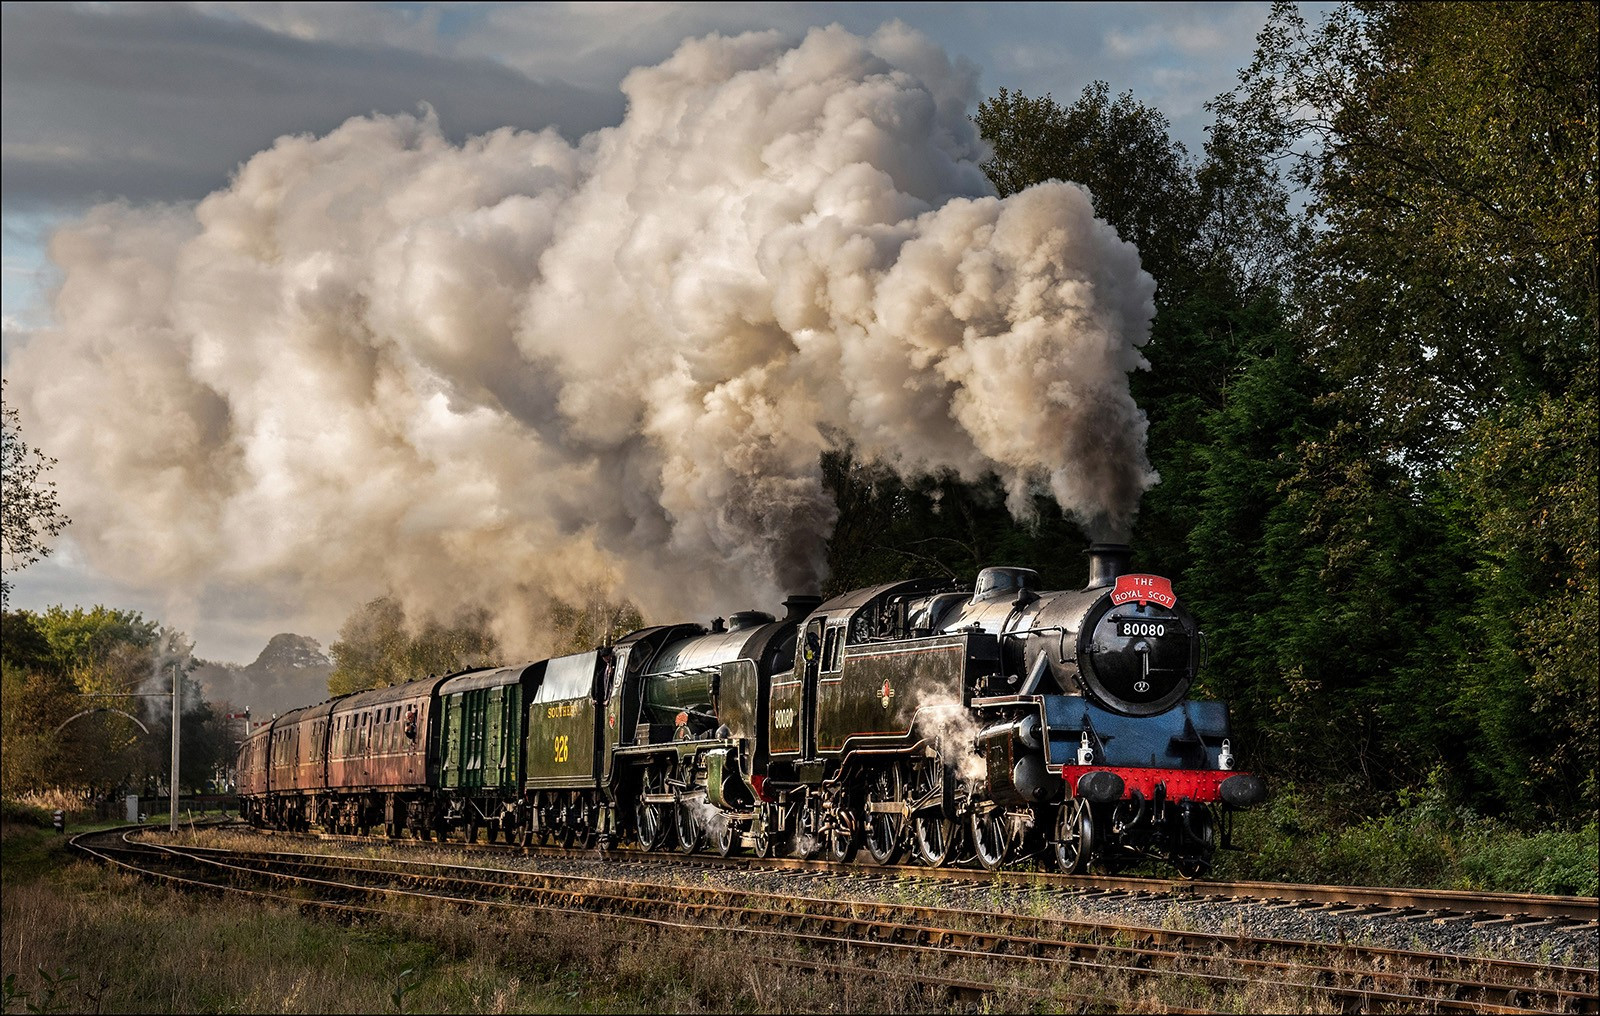 27. 80080 Double heads with Repton. .